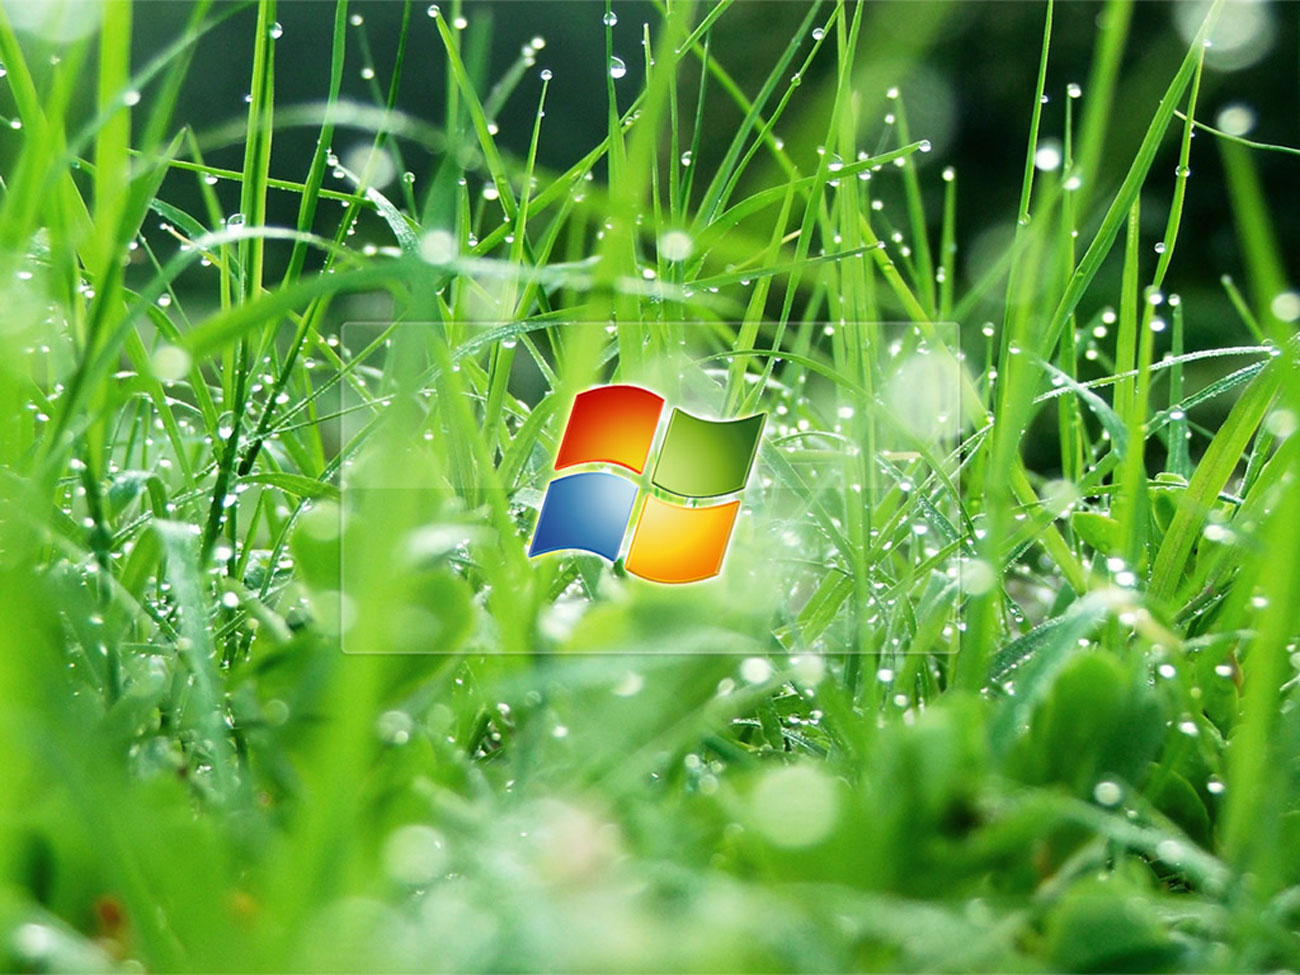 Windows 8 Animated Desktop Wallpaper